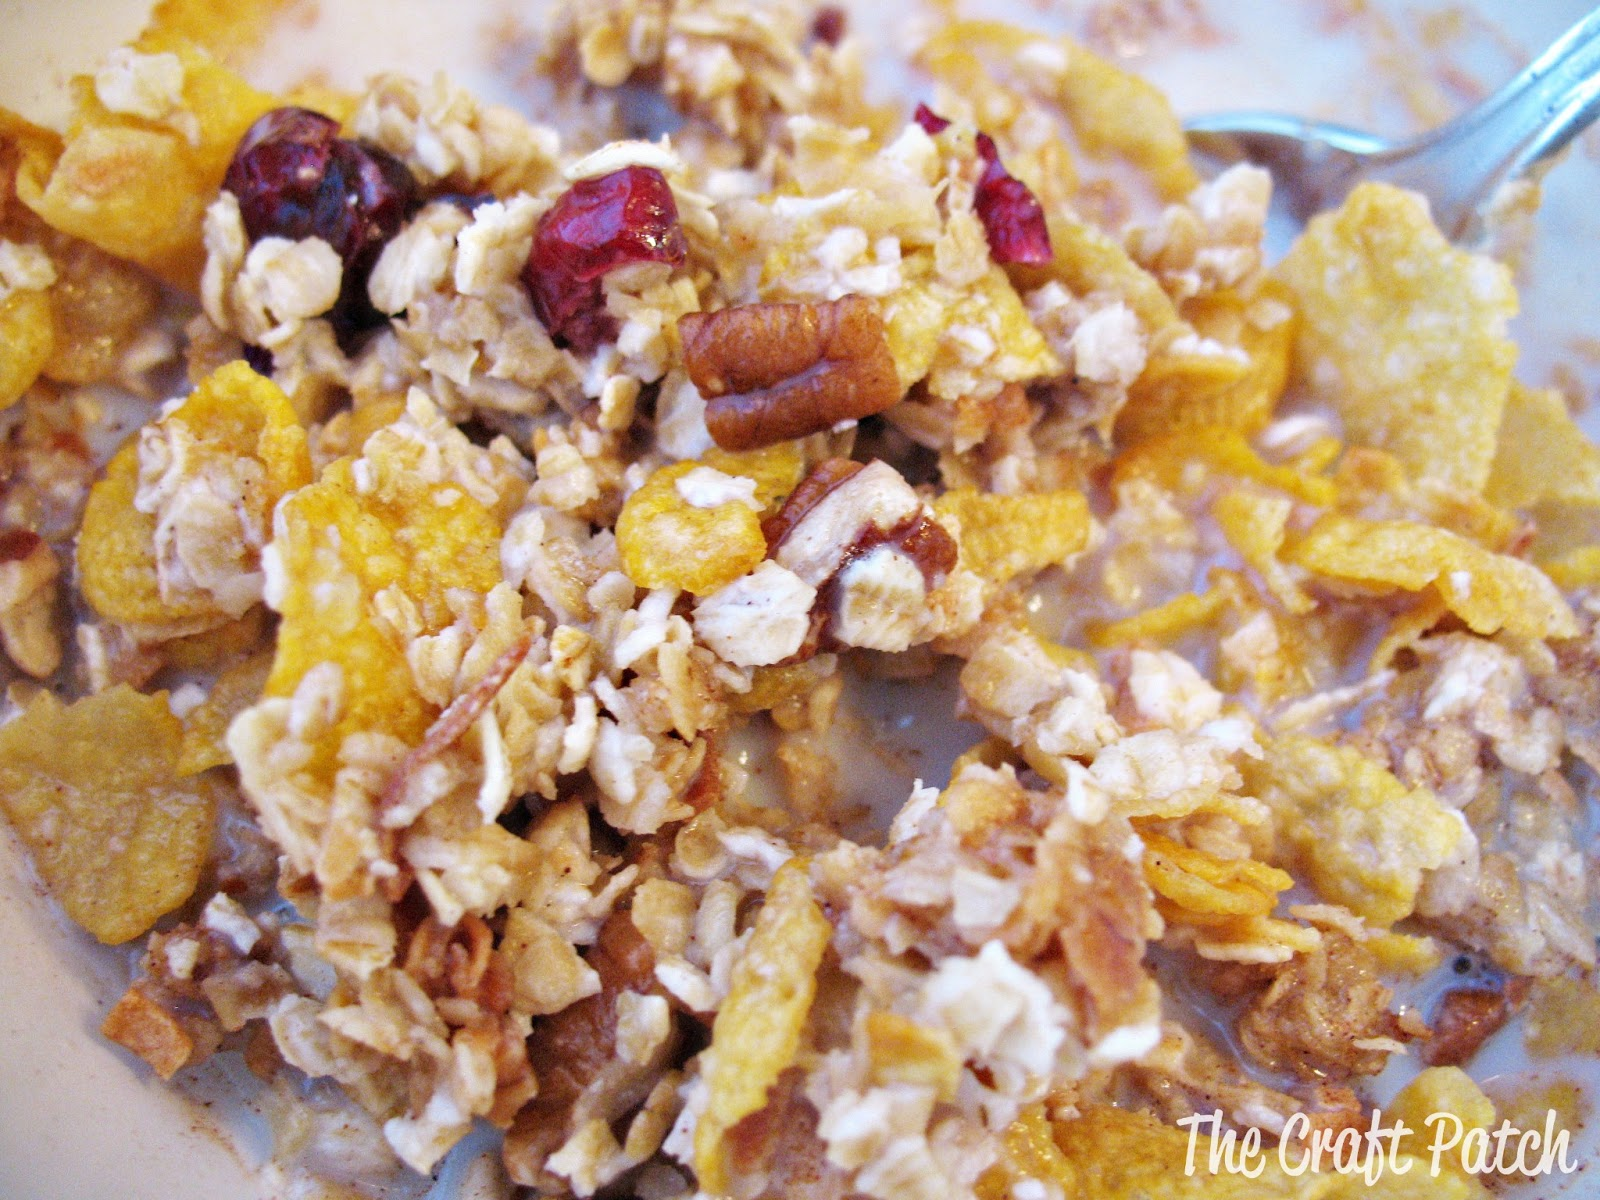 The Craft Patch: Easy Homemade Granola